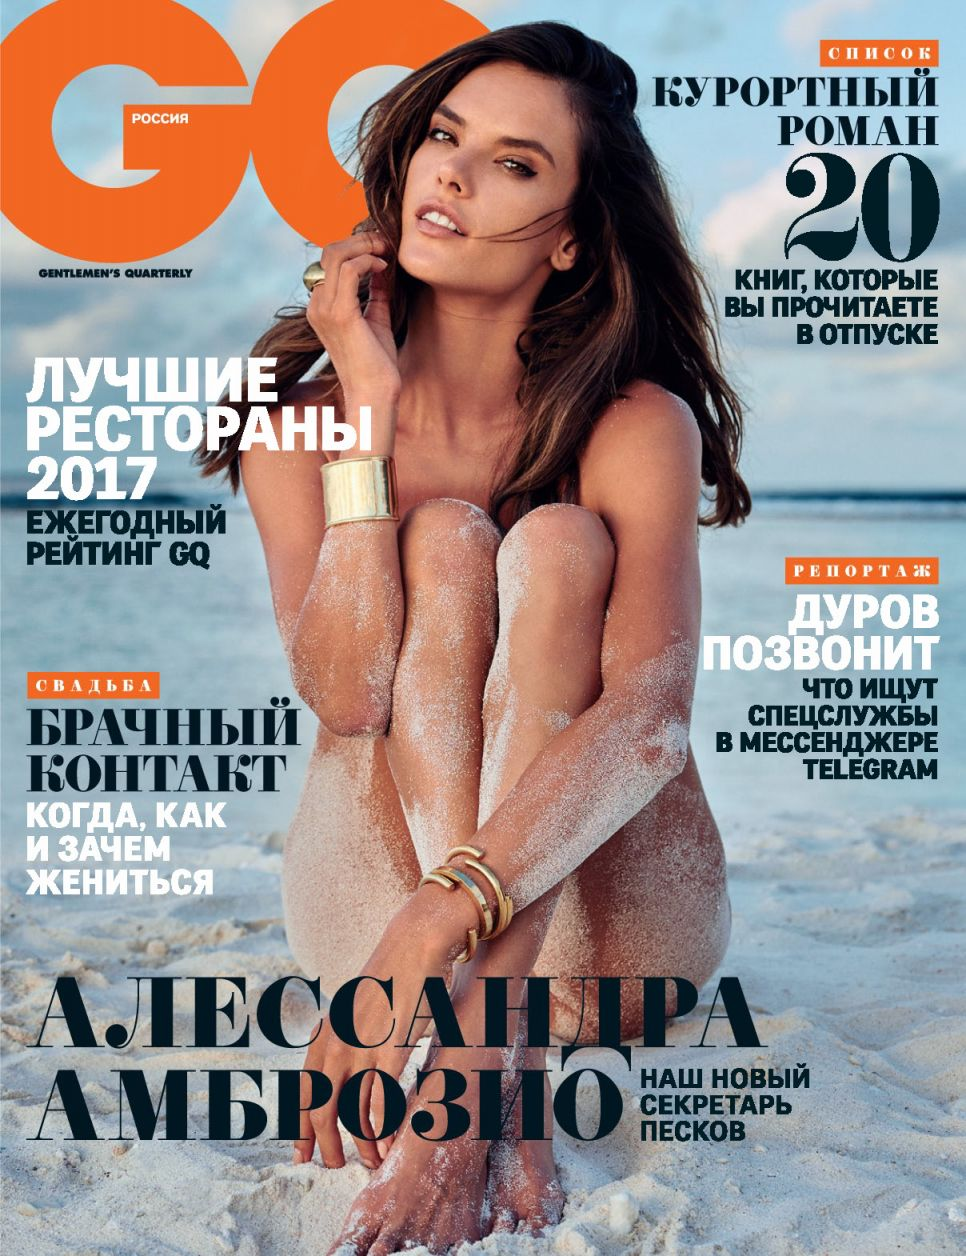 Alessandra Ambrosio in GQ Magazine, Russia - August 2017